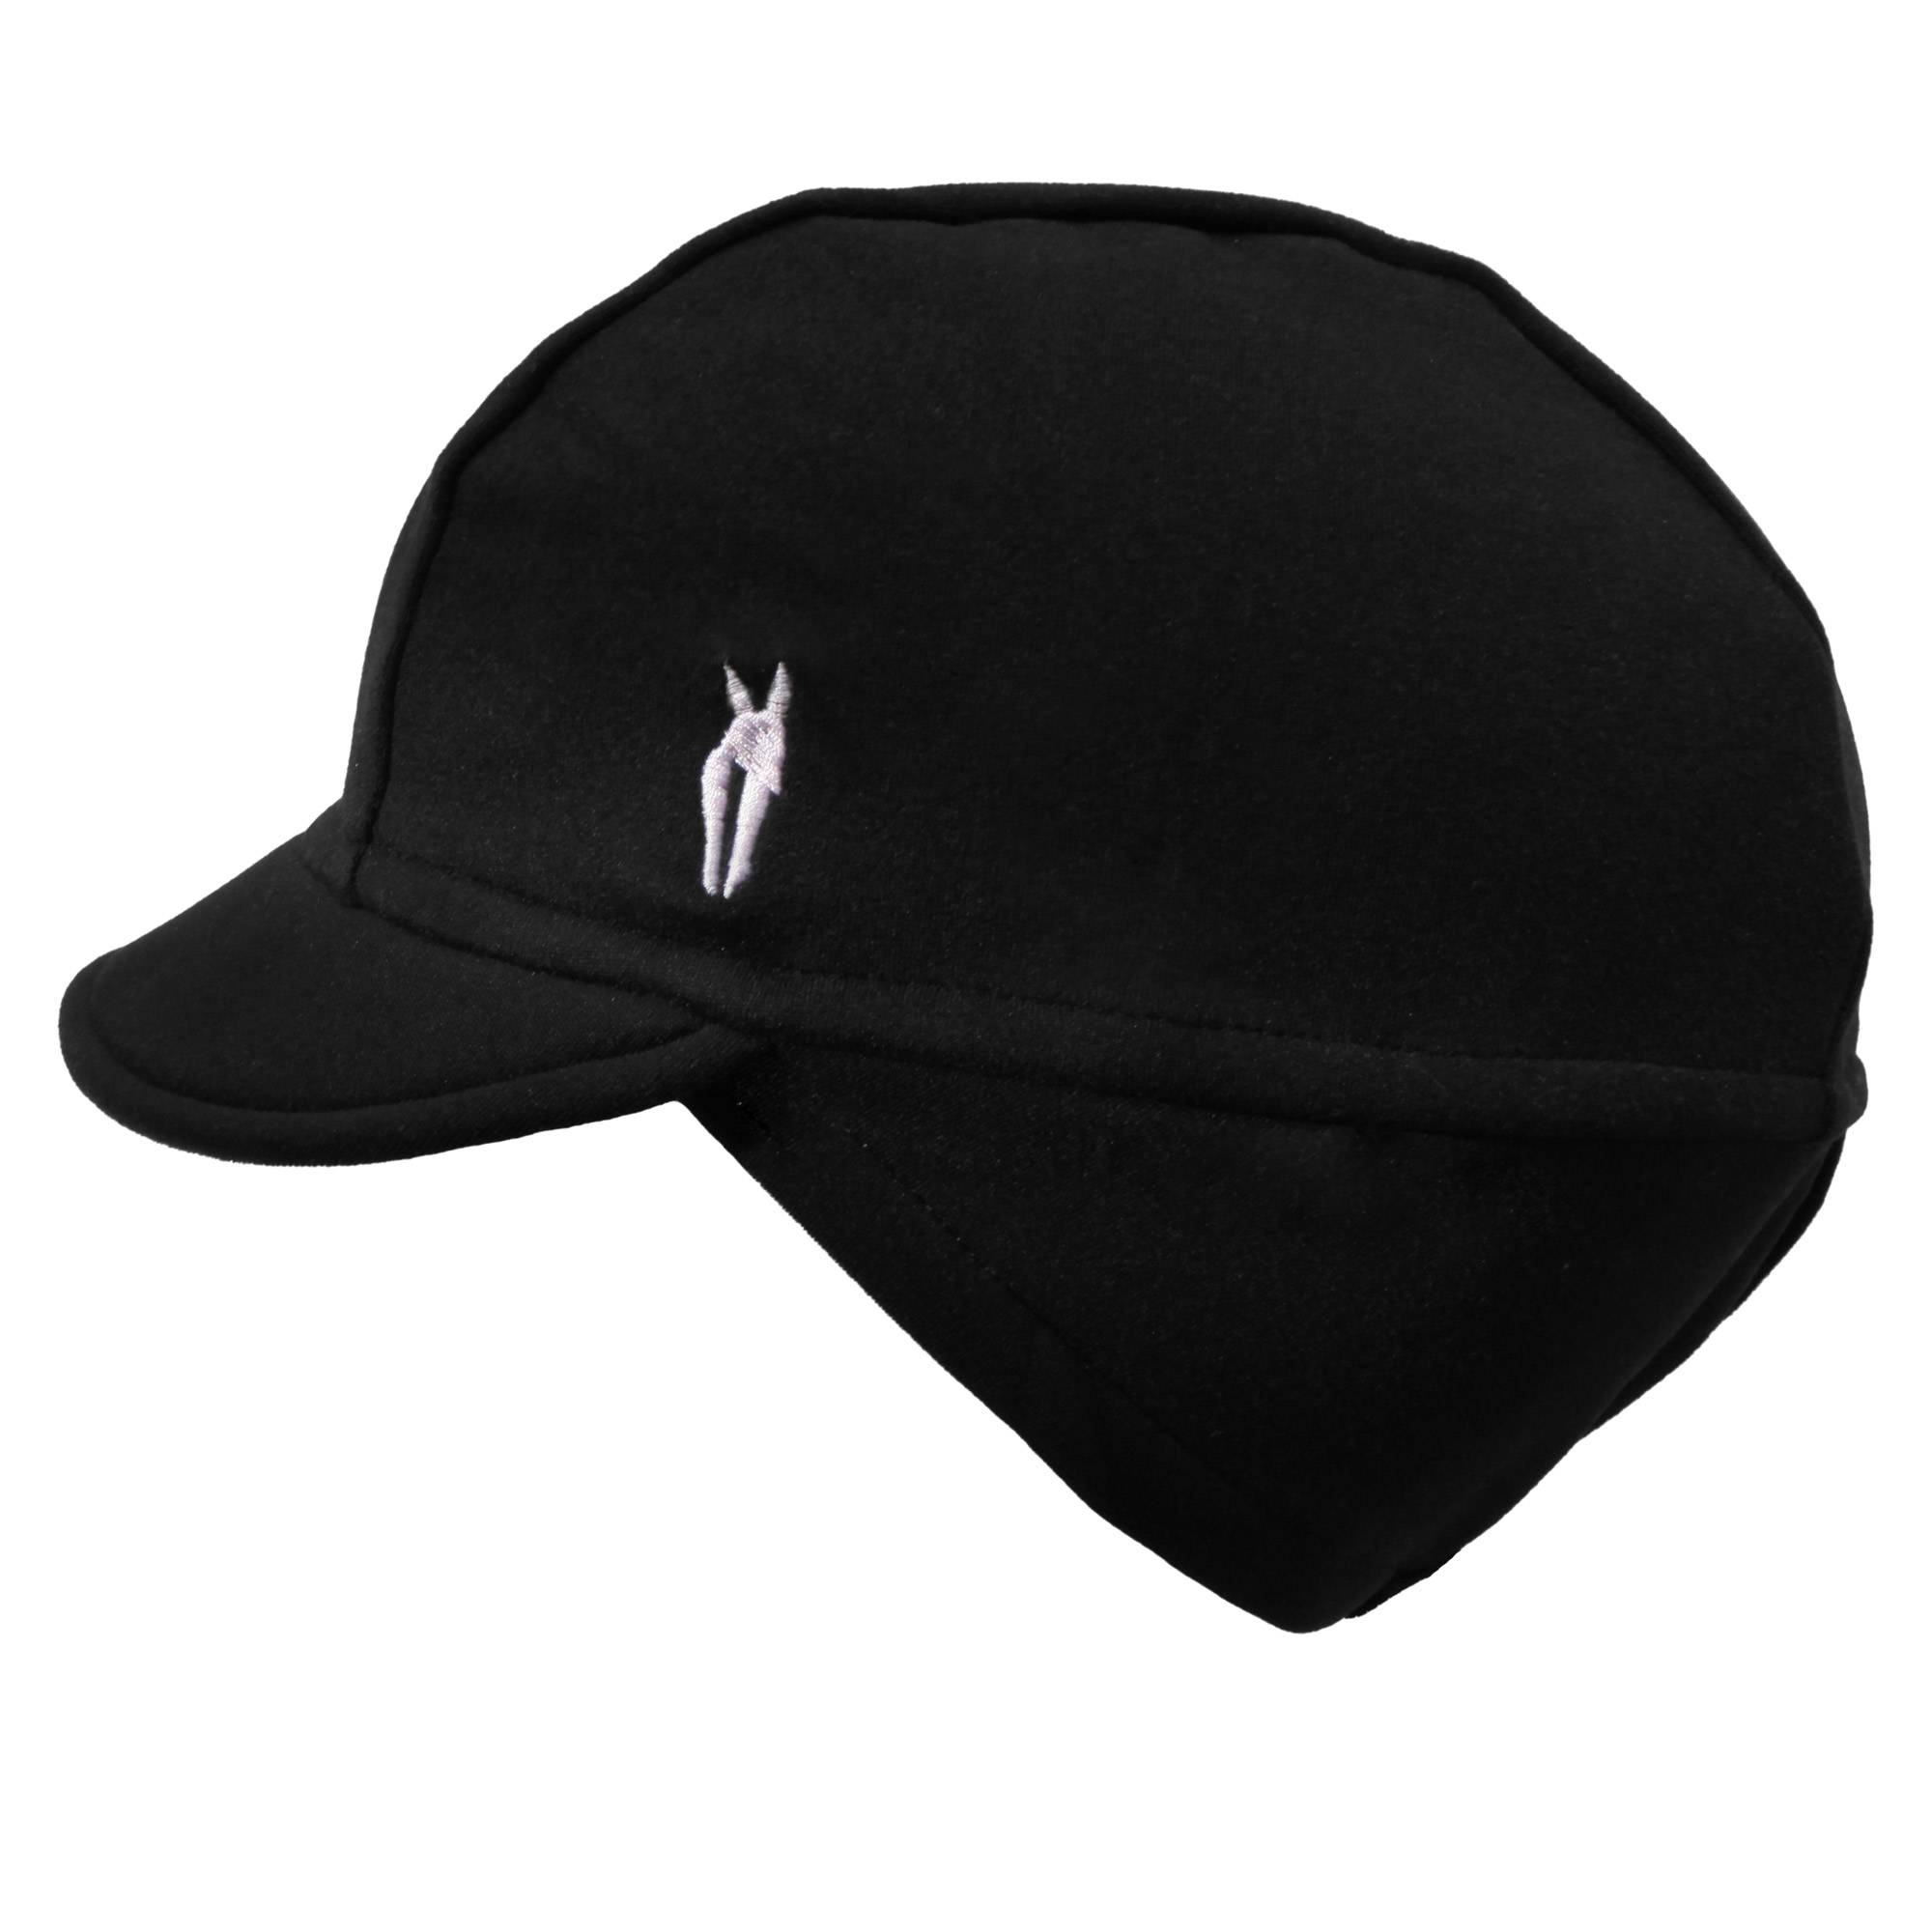 Irideon Himalayer Jockey Cap